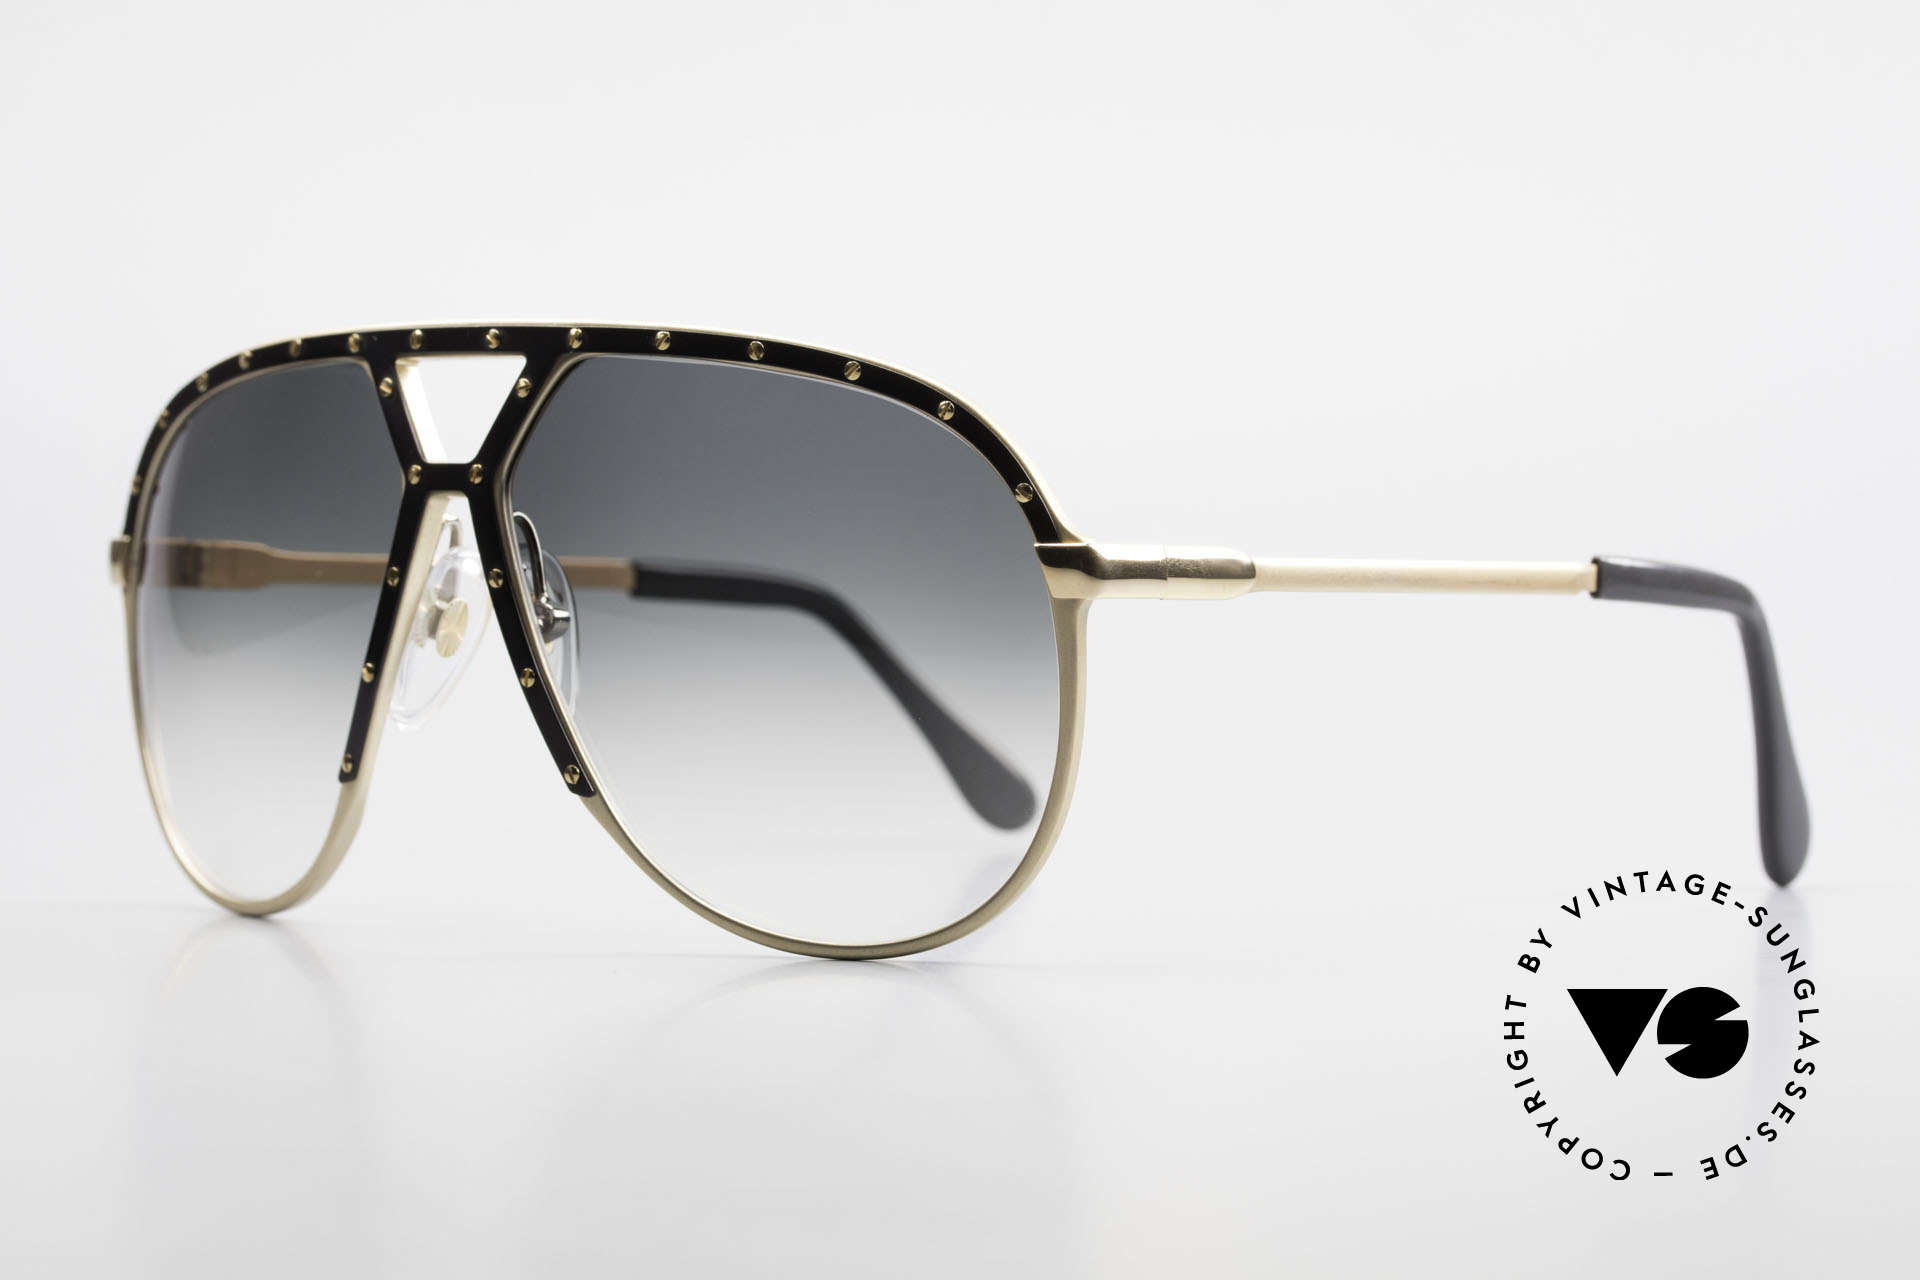 Alpina M1 Old 80's West Germany Shades, can been seen on album covers, photos, concerts.., Made for Men